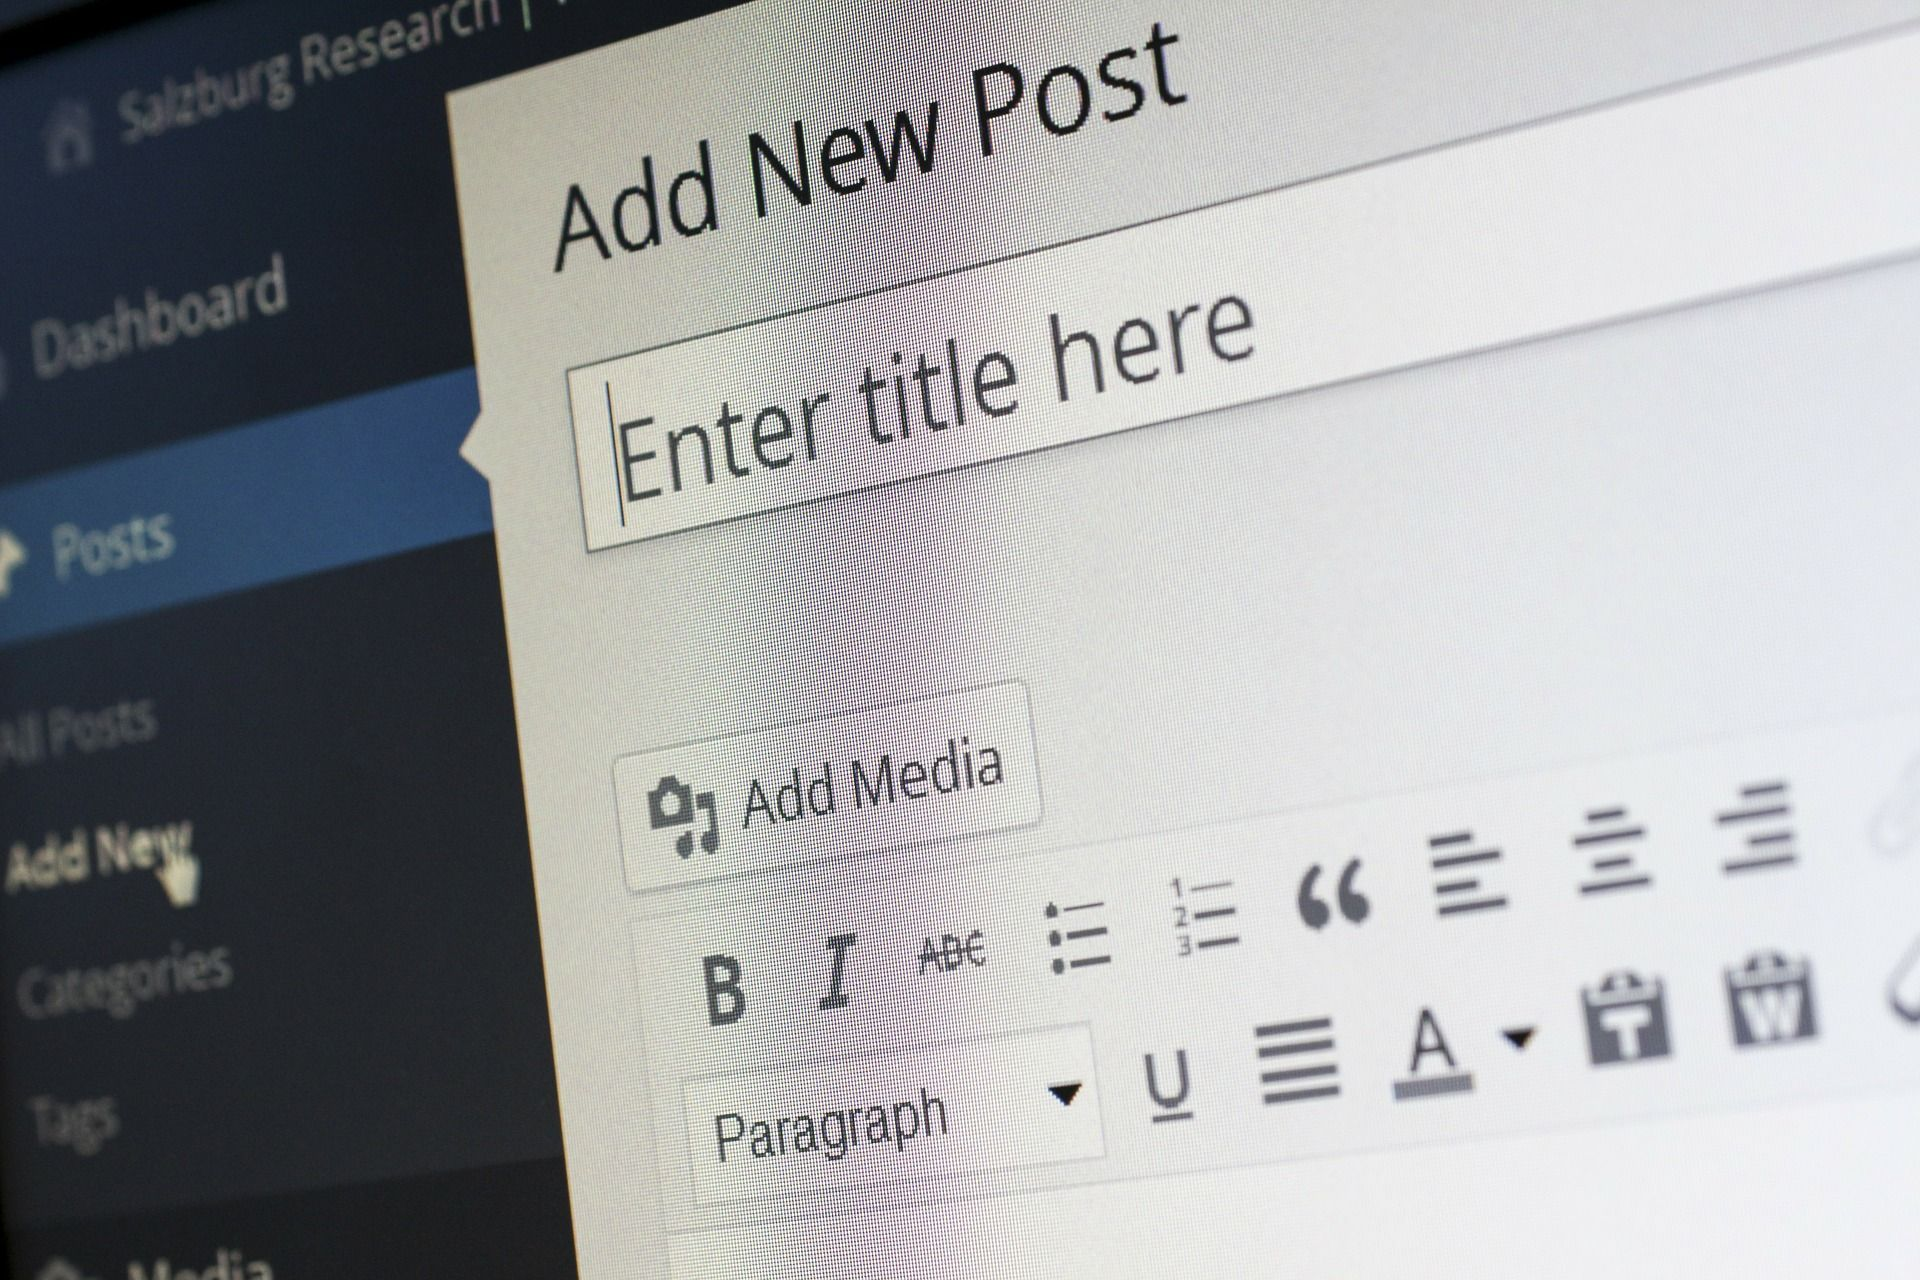 WordPress blogs offer easy ways to generate content.